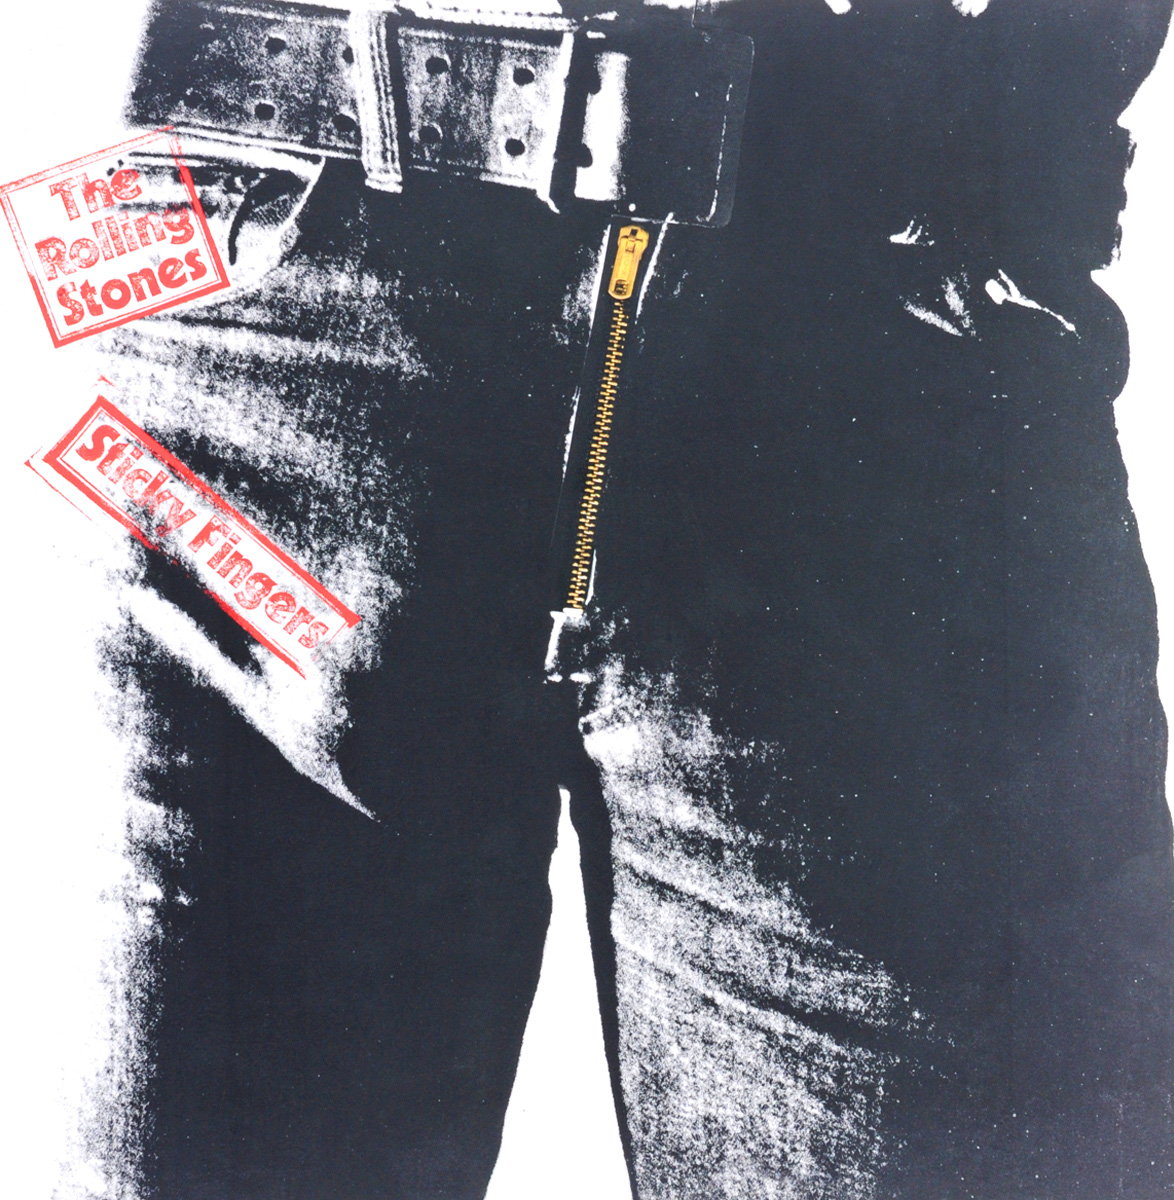 The Rolling Stones The Rolling Stones. Sticky Fingers (LP) weight bilancia balanza digital scale balance scales electronic digital luggage scale portable hanging scale with hook strap new